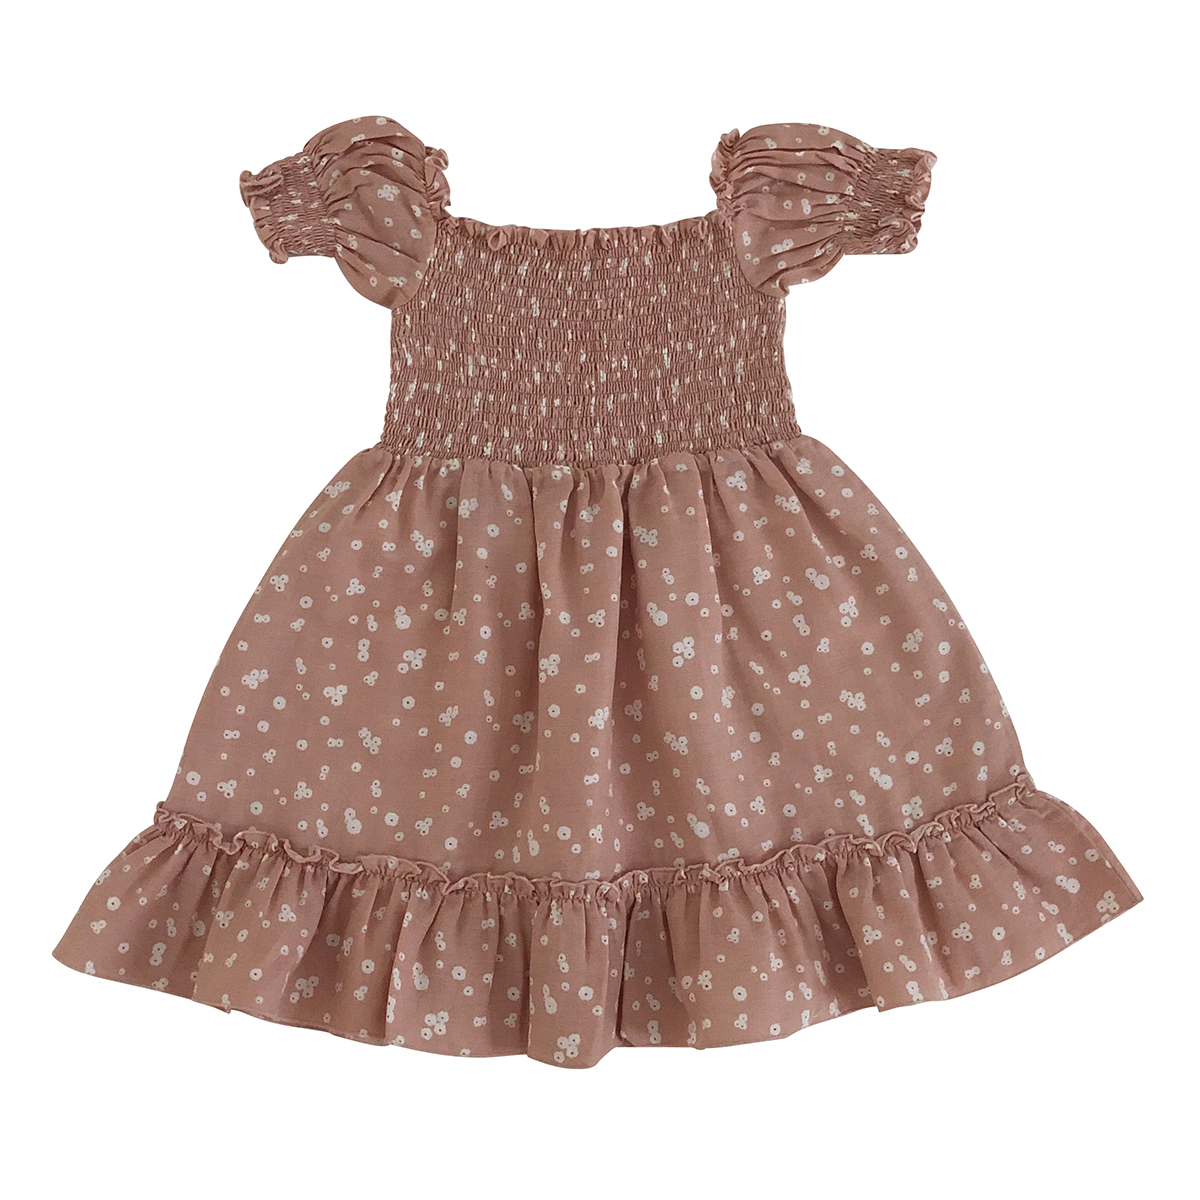 liilu Baby/Toddler/Big Kid Smocked Dress- Flower Petals